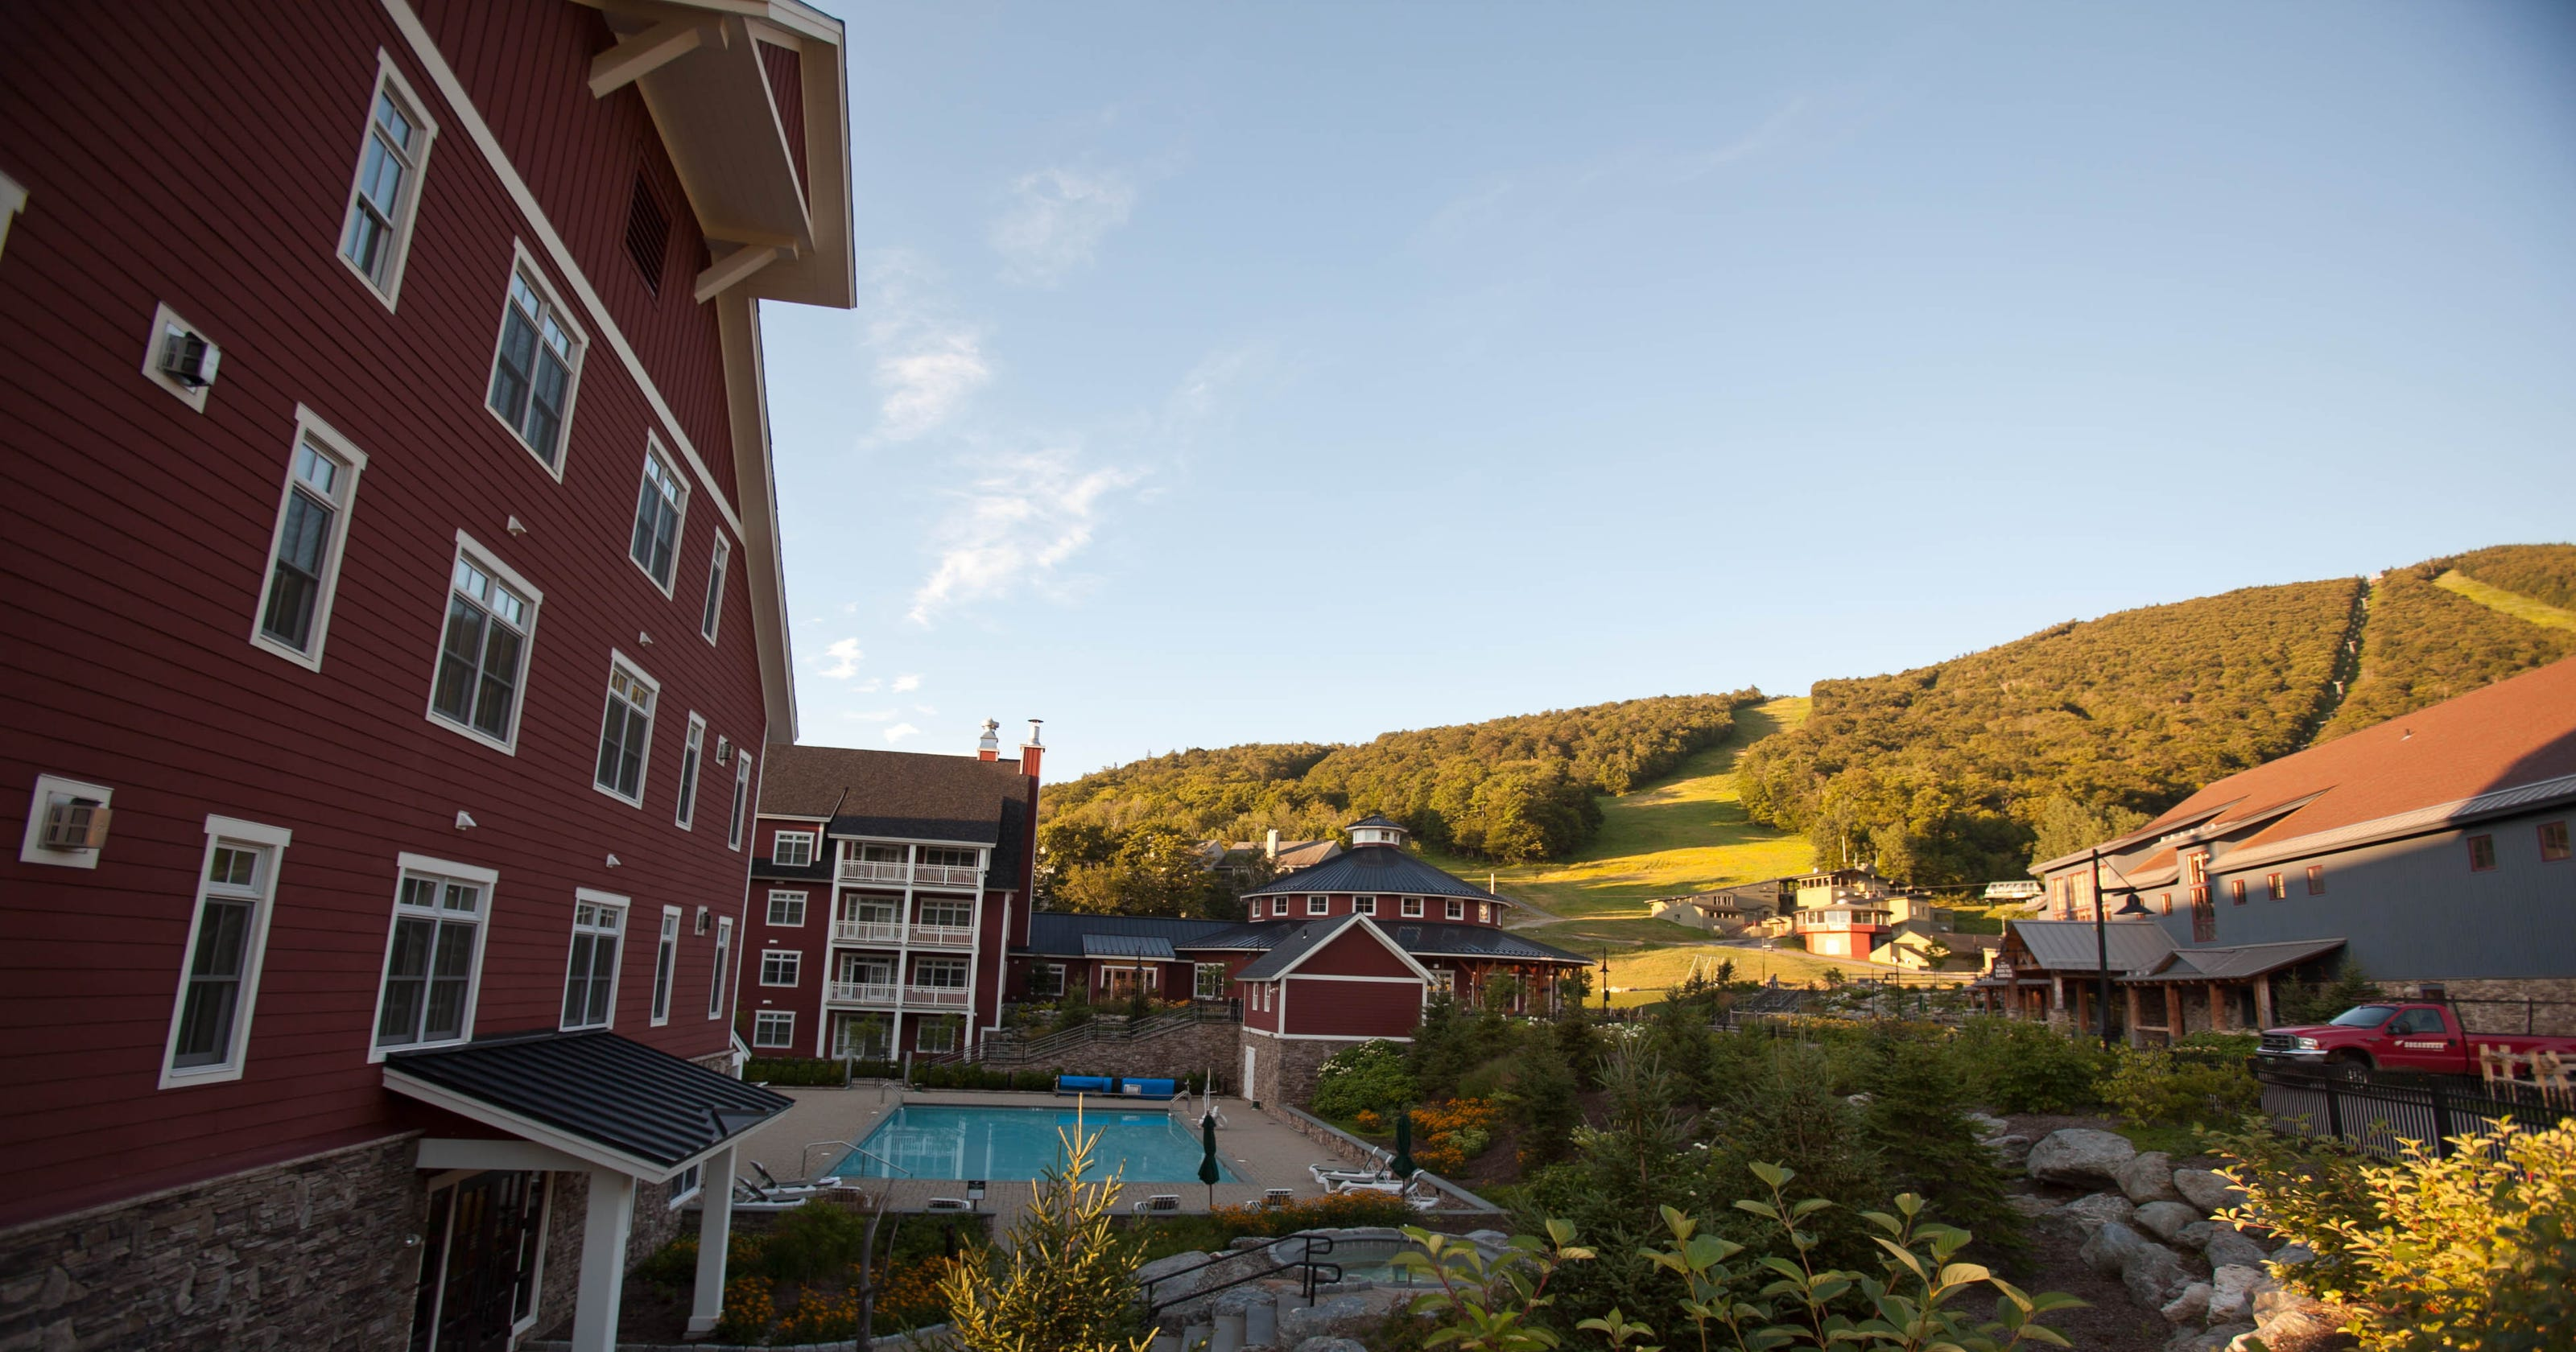 New England's most scenic hotels and resorts